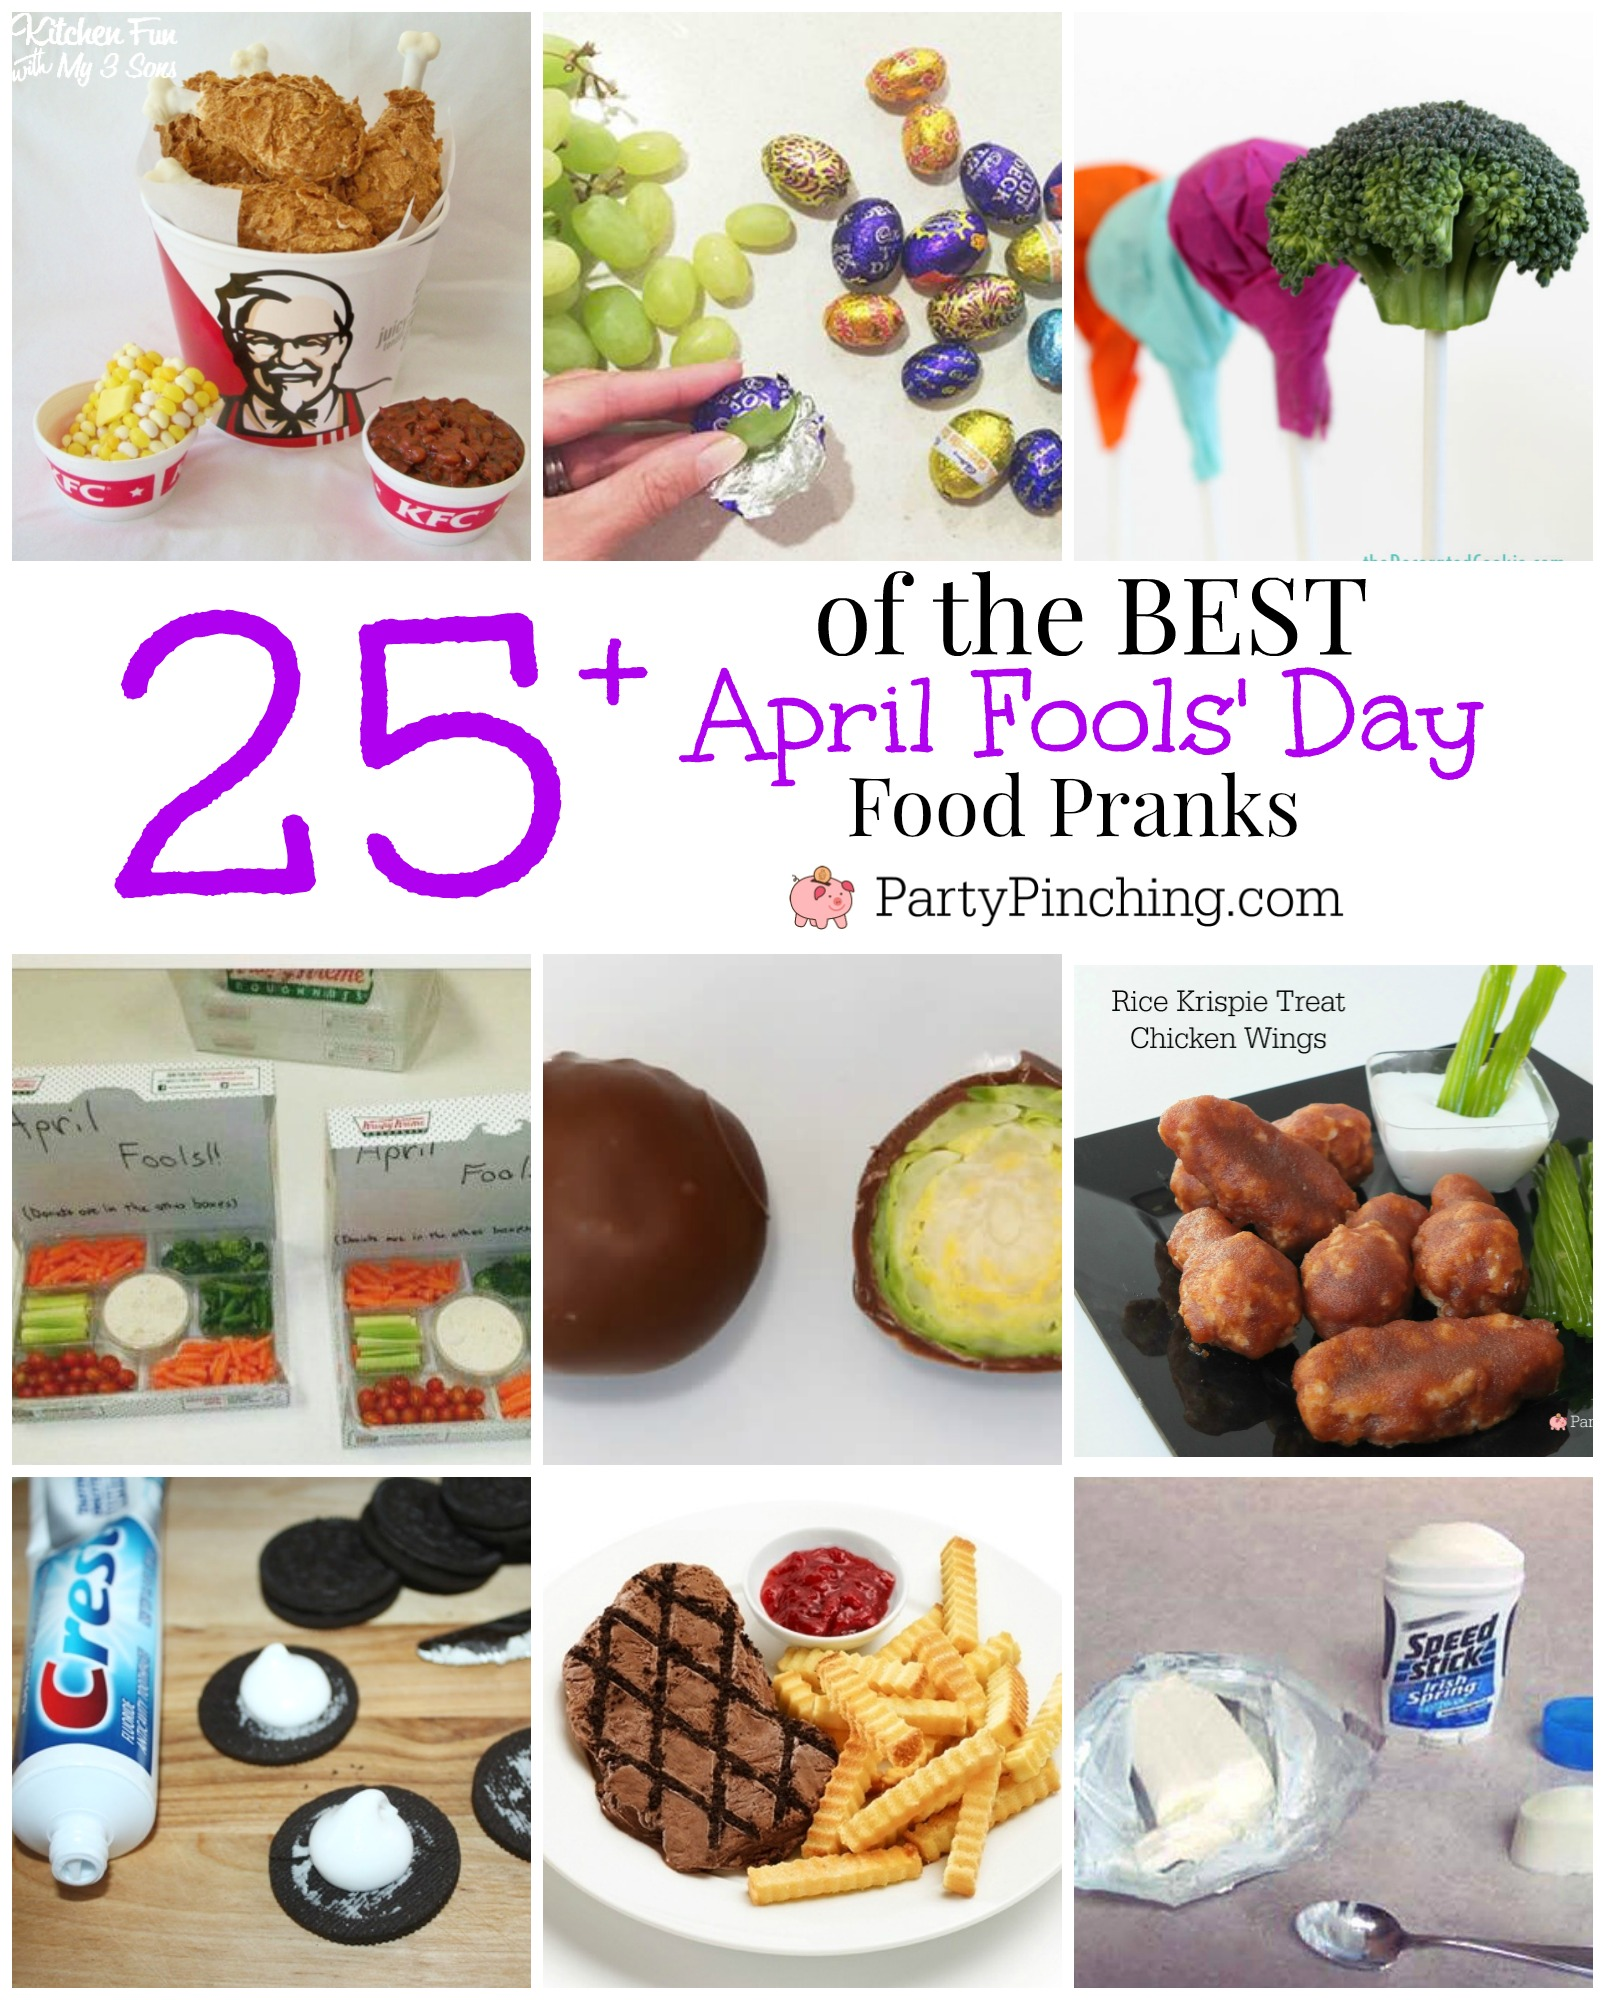 BEST APRIL FOOLS\' DAY FOOD PRANKS - Party Pinching